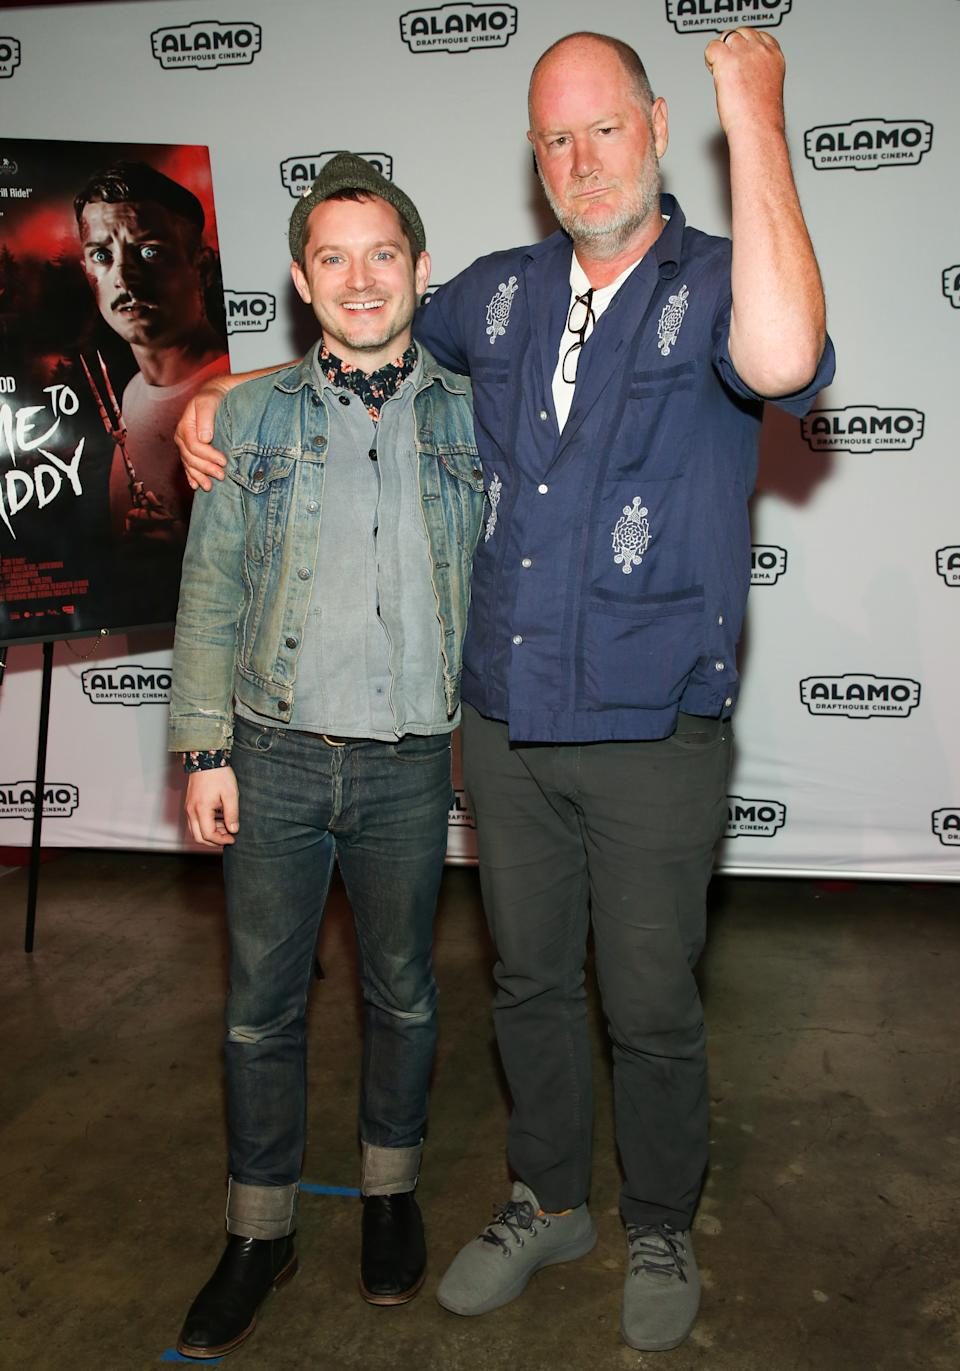 LOS ANGELES, CALIFORNIA - FEBRUARY 03: Actor Elijah Wood (L) and Director Ant Timpson (R) attend the photocall for